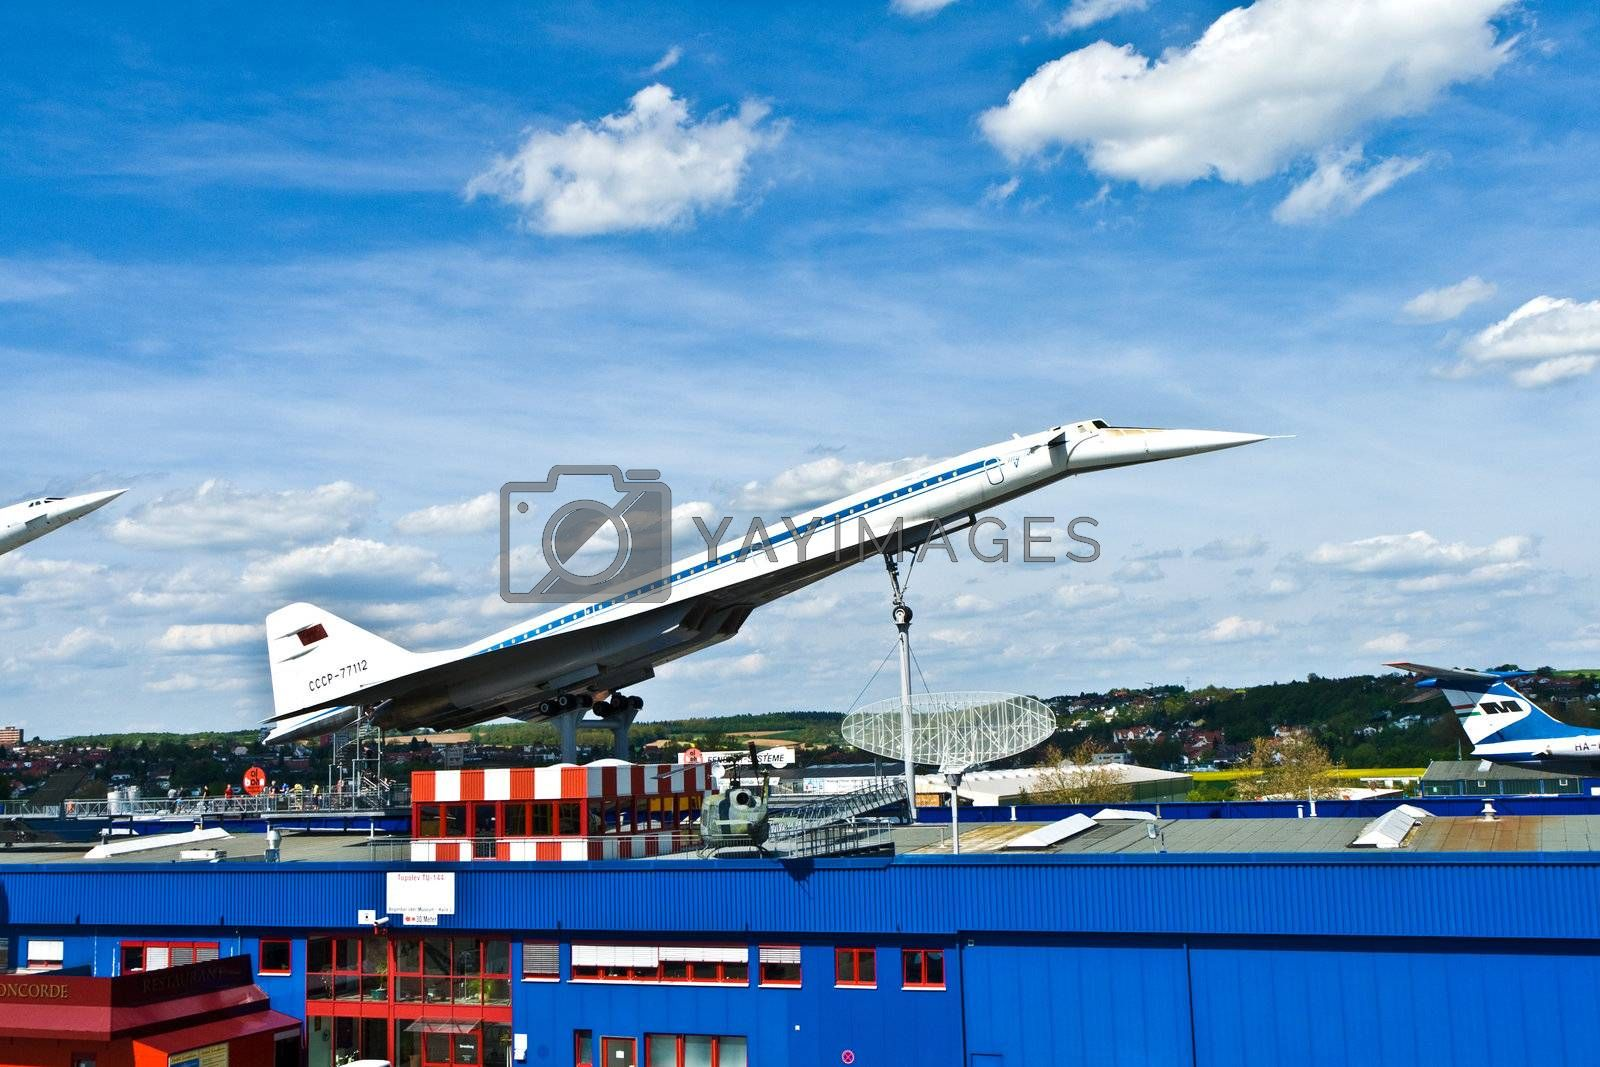 SINSHEIM, GERMANY - MAY 05: supersonic aircraft  Tupolev TU-144 in the museum in Sinsheim  on May 05, 2008 in Sinsheim, Germany.